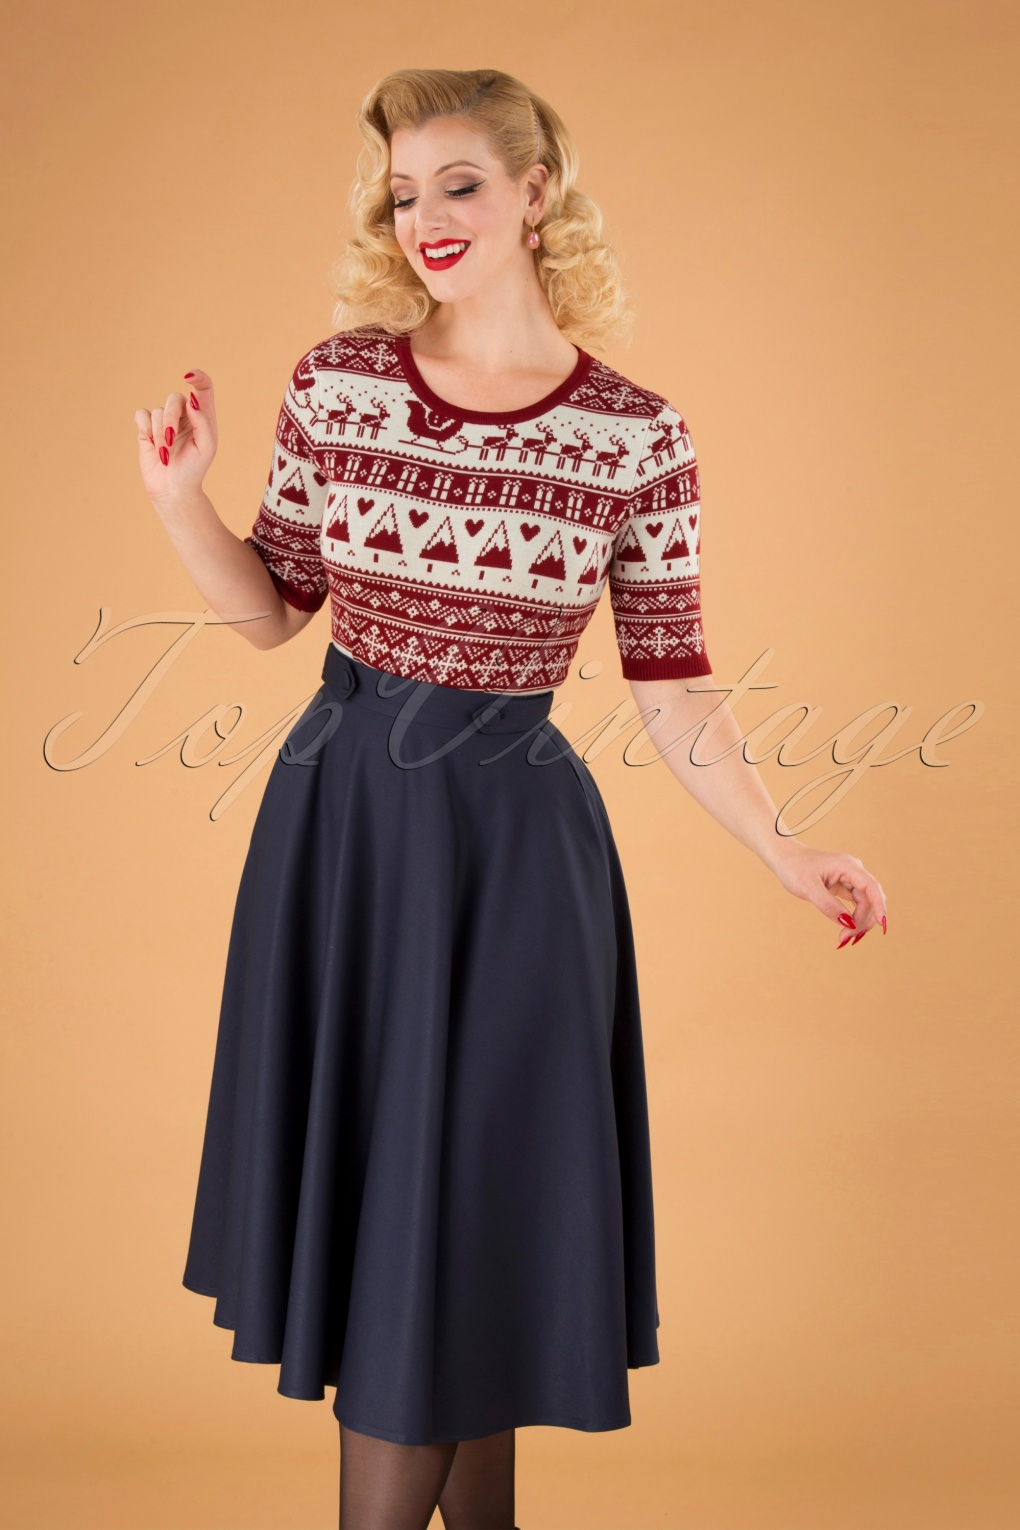 1950s Swing Skirt, Poodle Skirt, Pencil Skirts 50s Di Di Swing Skirt in Night Blue £35.11 AT vintagedancer.com